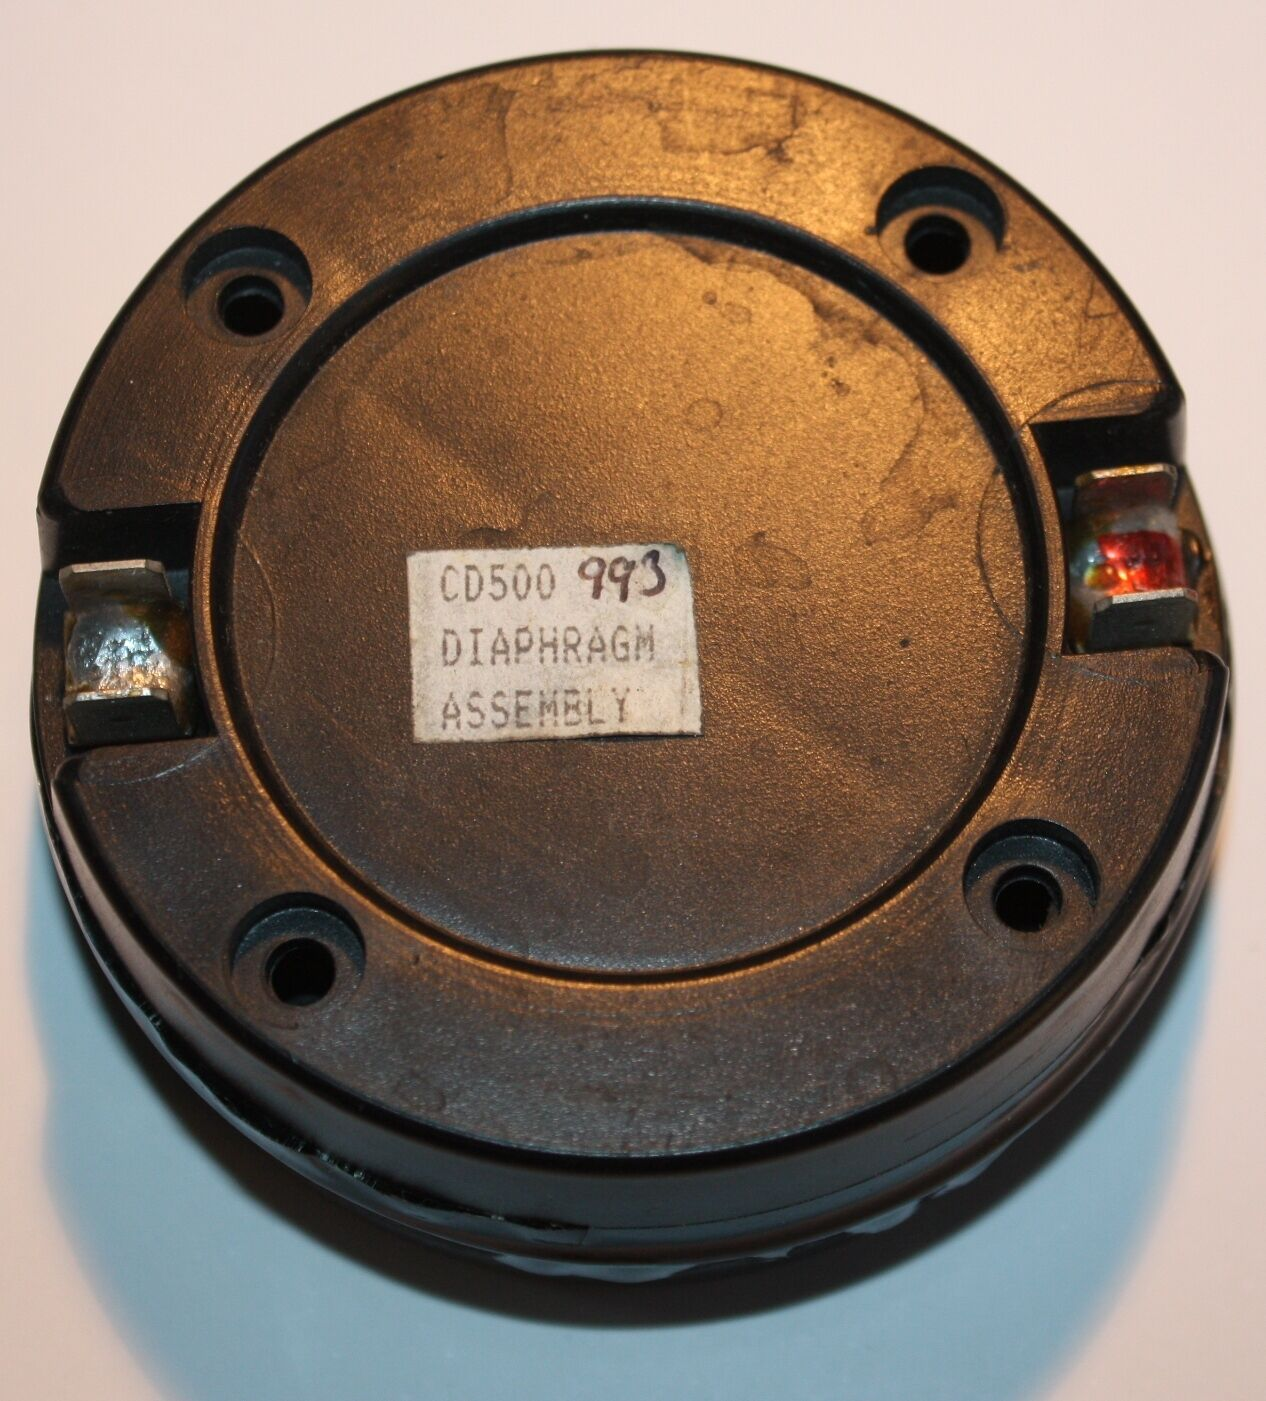 HH Audio Driver Diaphragm Assembly CD500 993